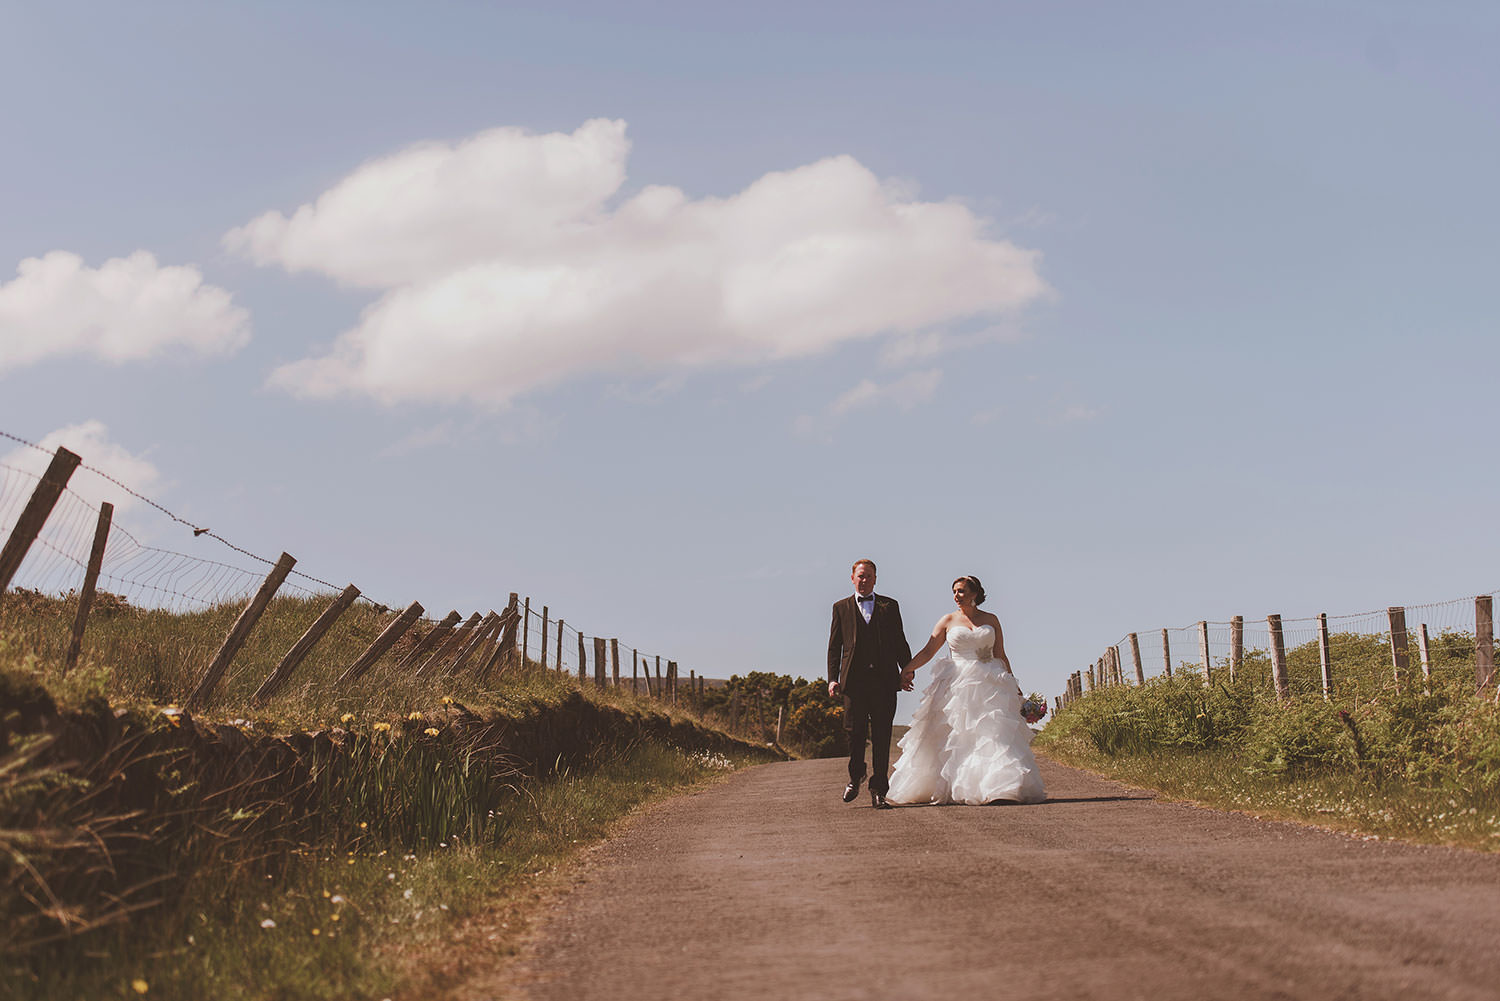 wedding-photographers-ireland-091.jpg